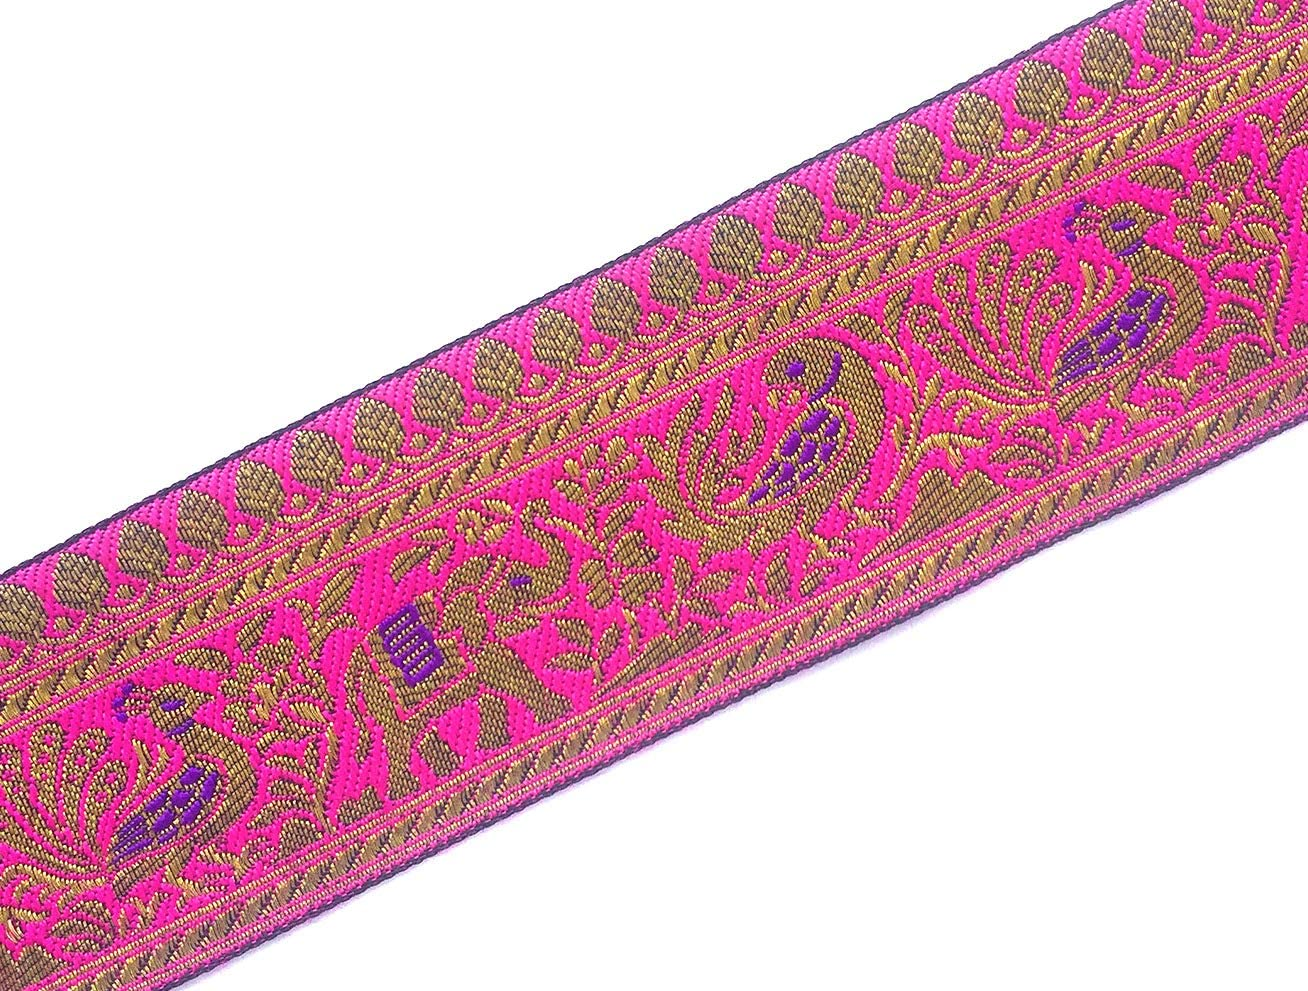 Brocade Ribbon in Black and Gold for Sewing Indian Jacquard Trim Animal Pattern 3 Yards by Craftbot